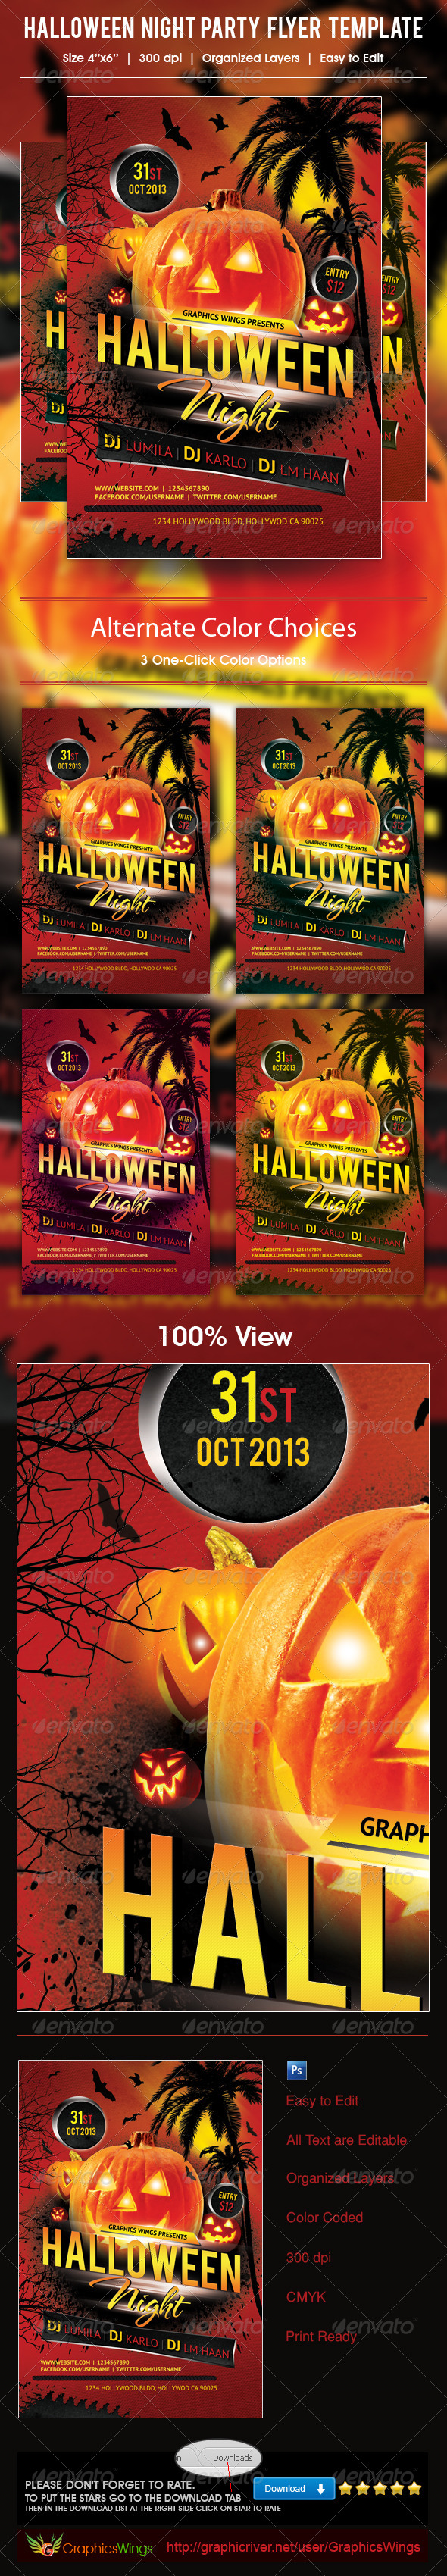 Halloween Night Party Flyer Template - Events Flyers